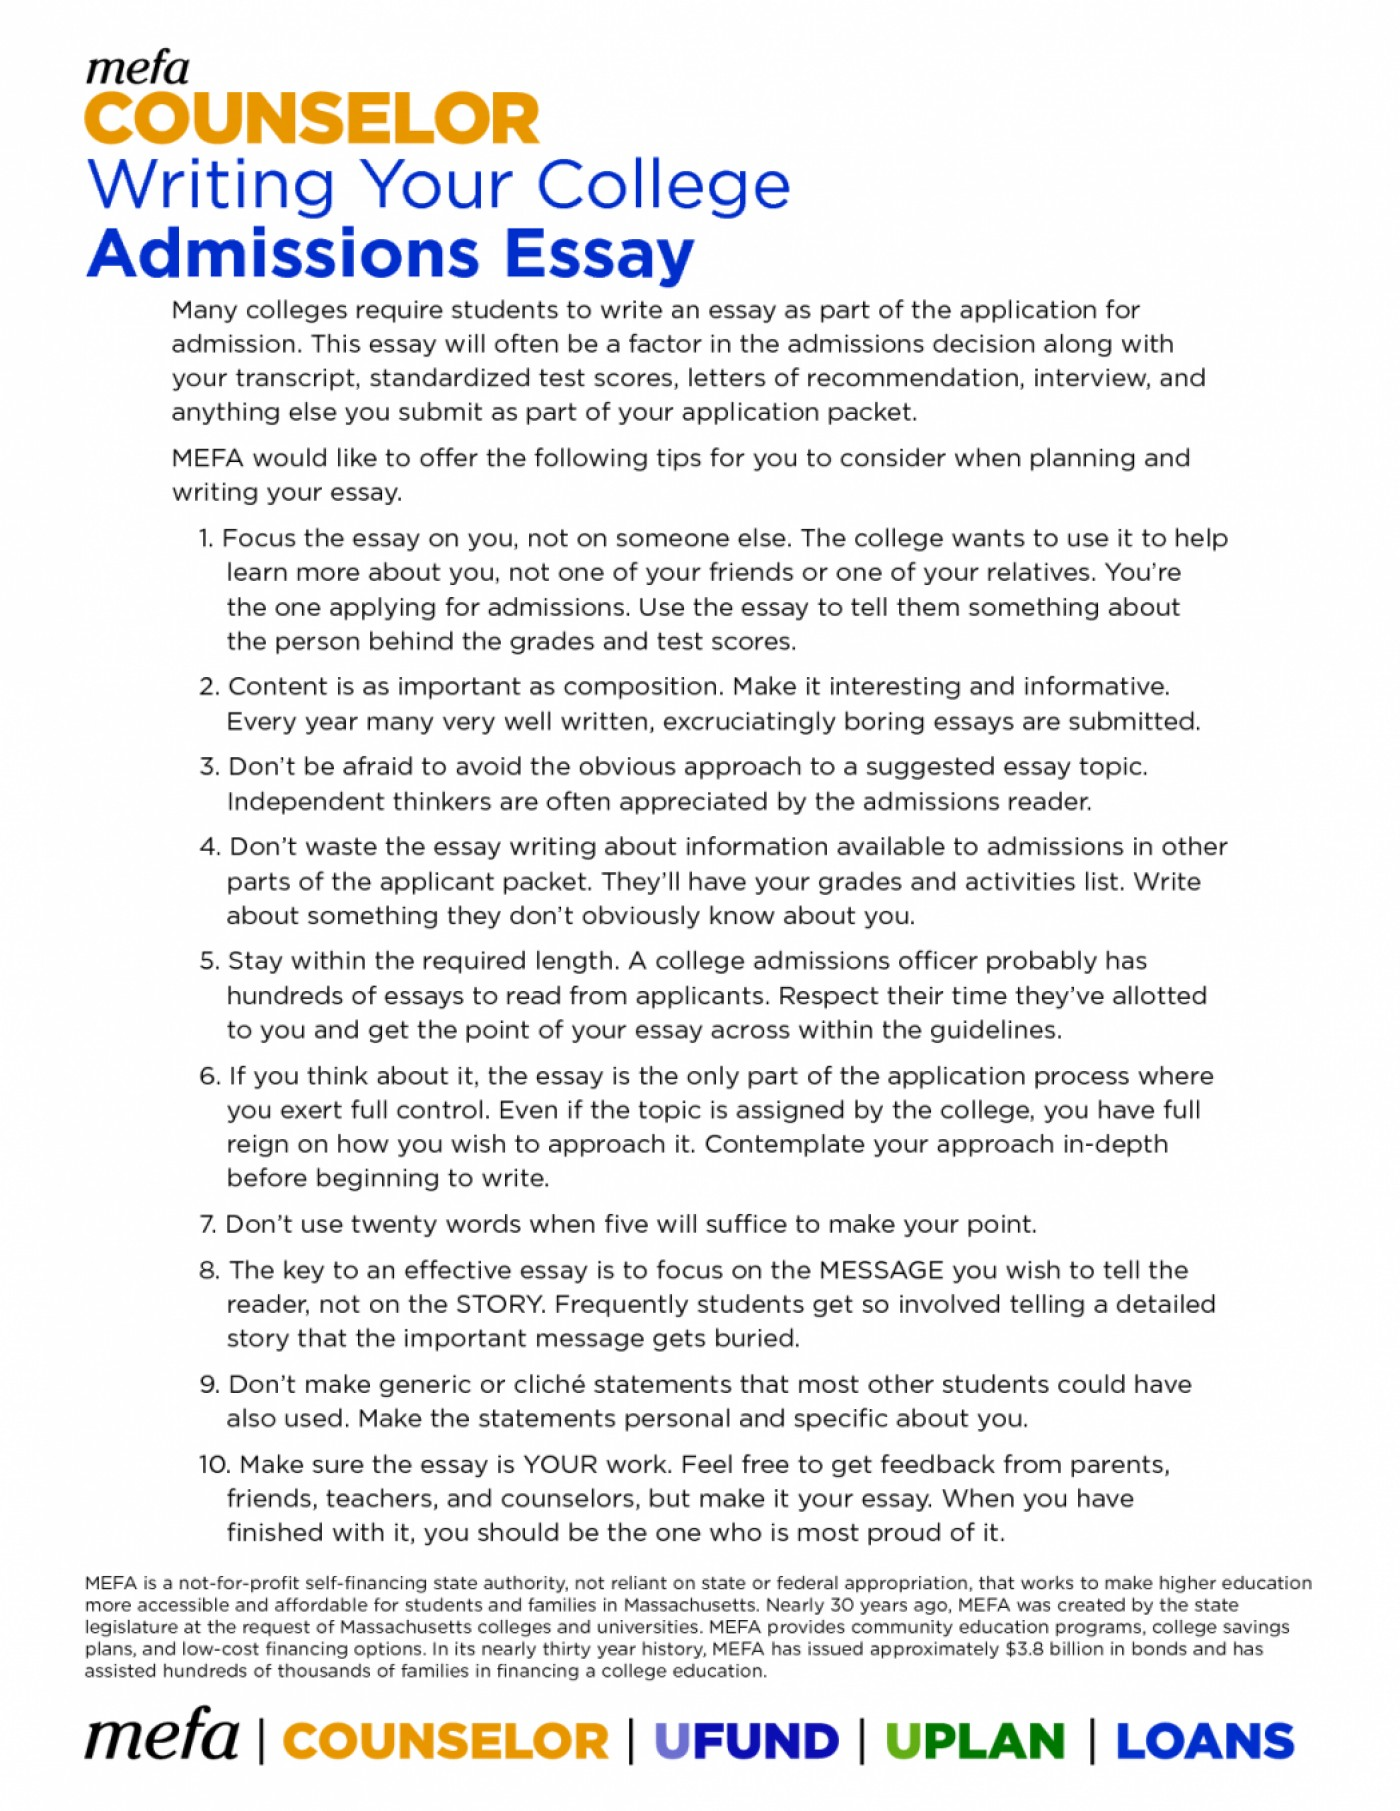 016 Essay Example College Writing Help High School How Many Paragraphs Should Application Wuaom Pages Words Long What About Formatted In Mla Format 1048x1356 Are An Unforgettable Informative Body Needed 1400